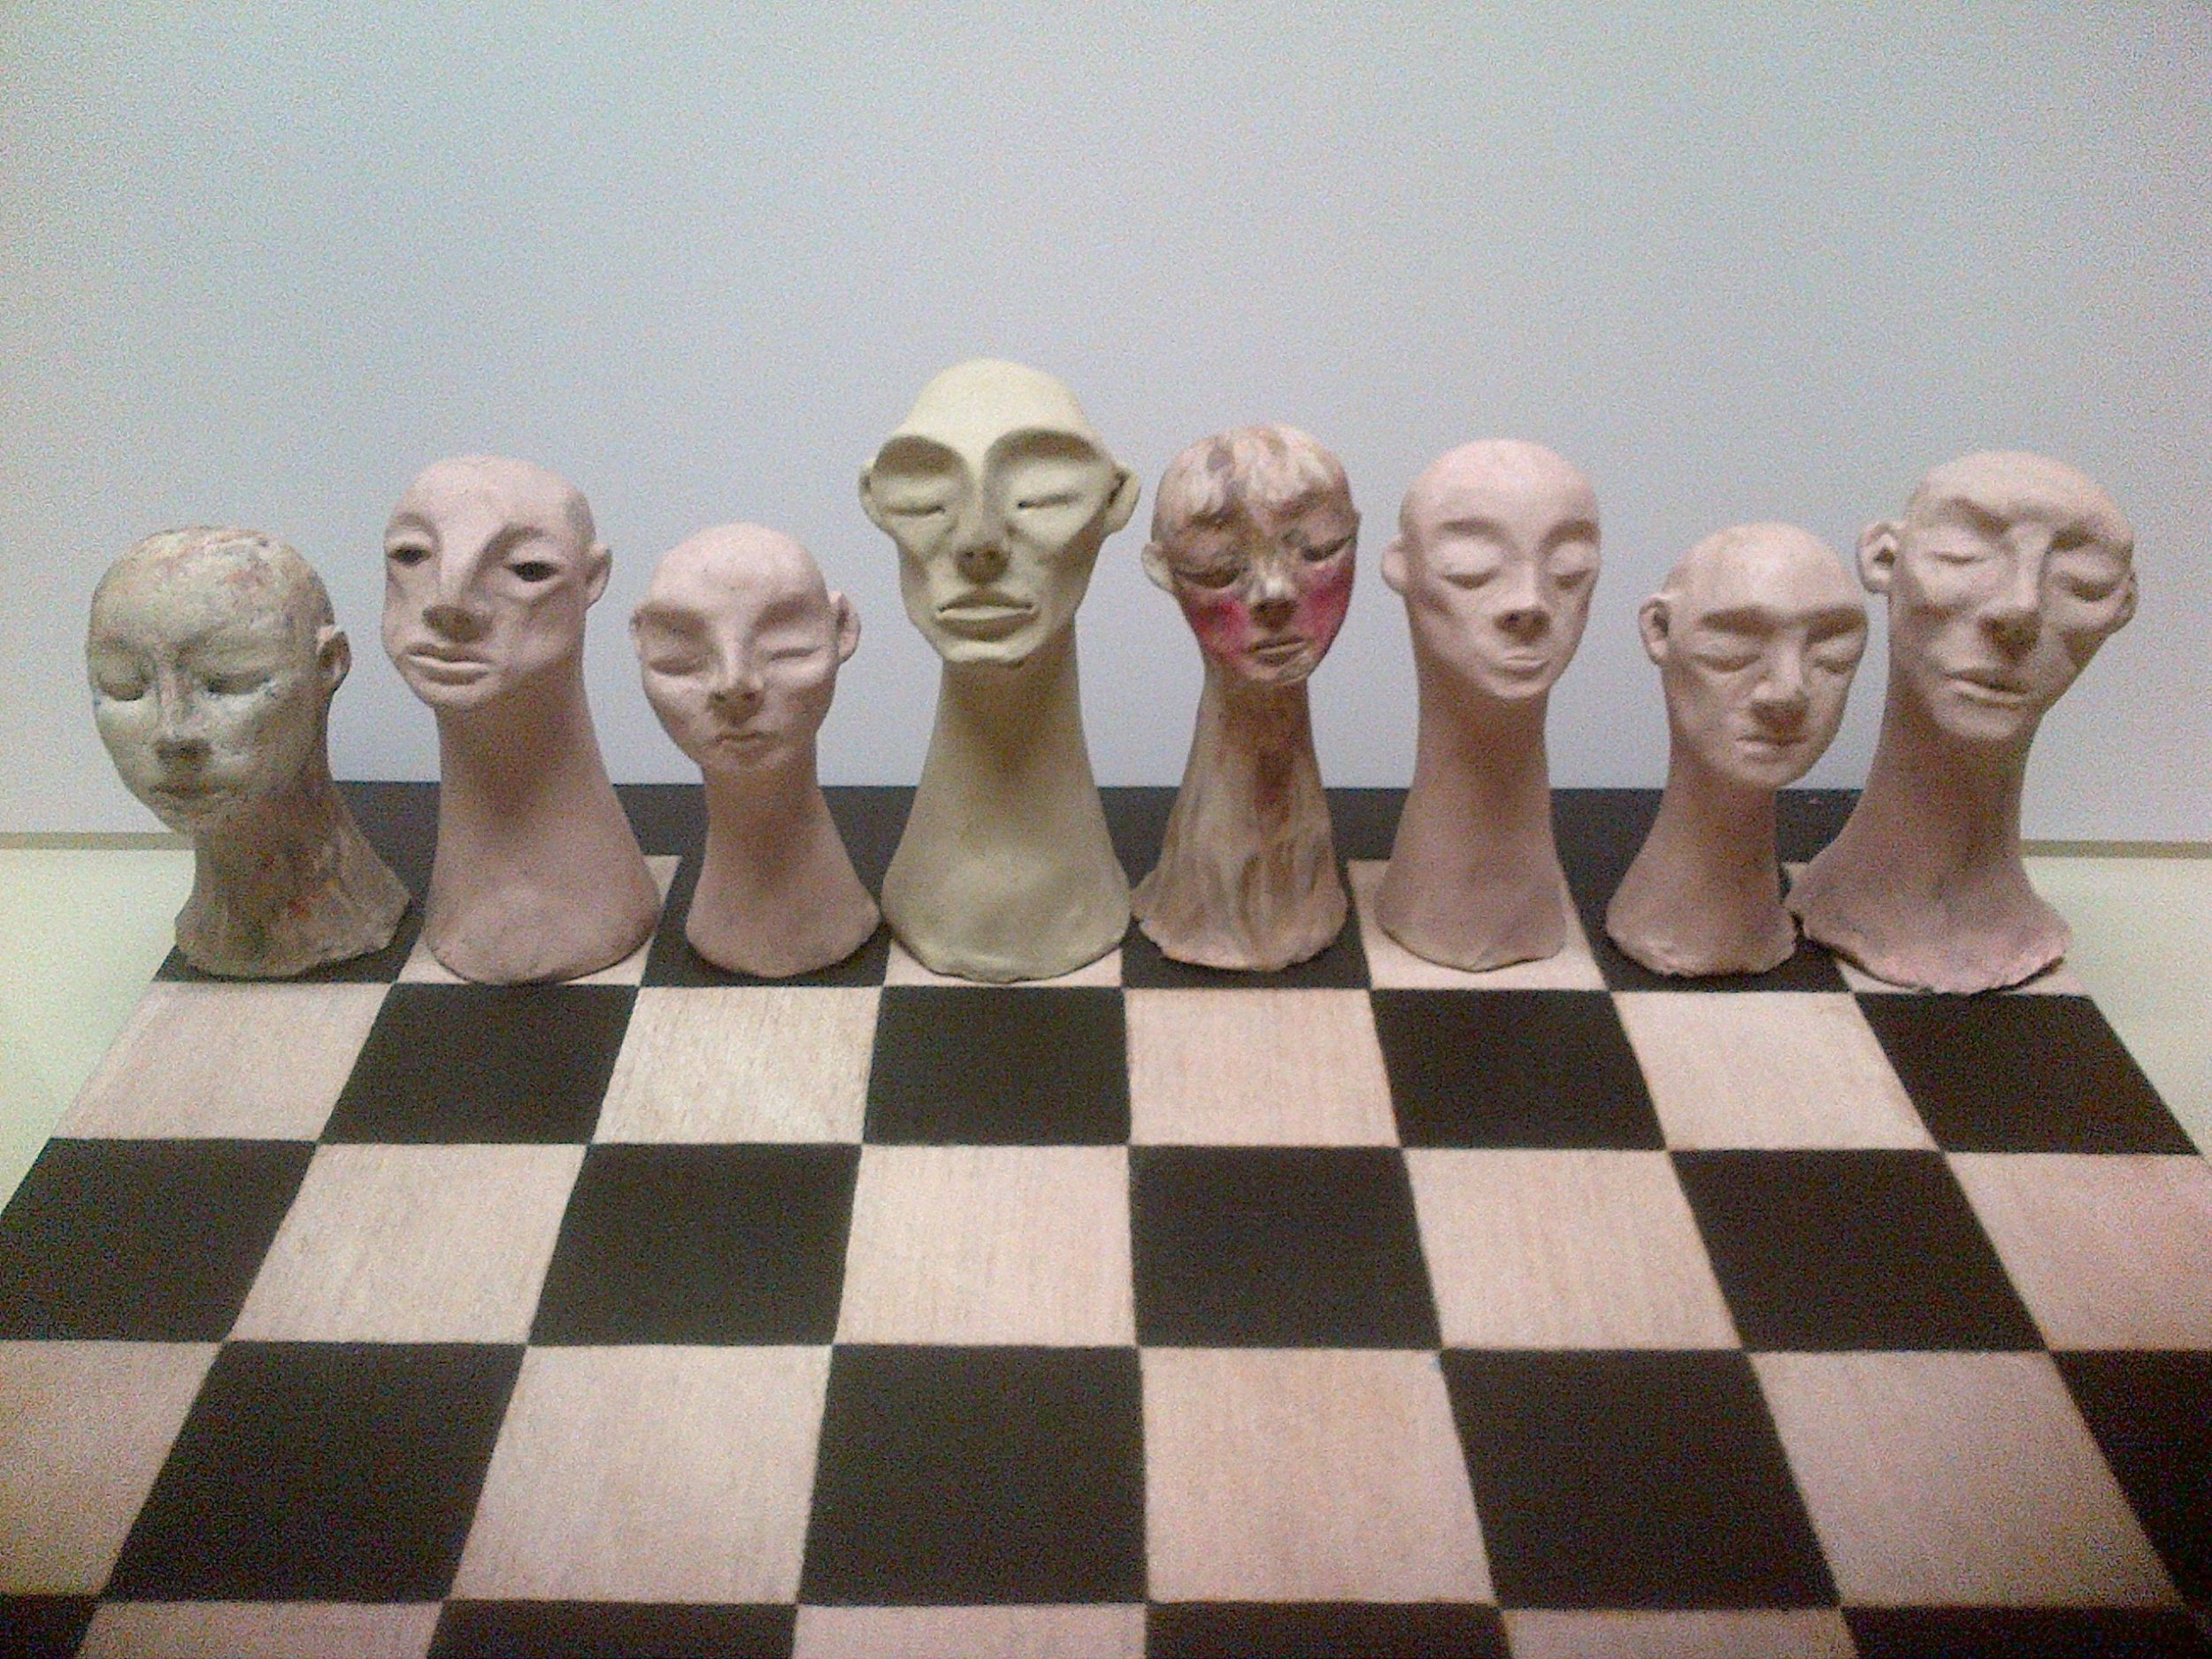 Head chess, 2013, plasticine on varnished ink on board